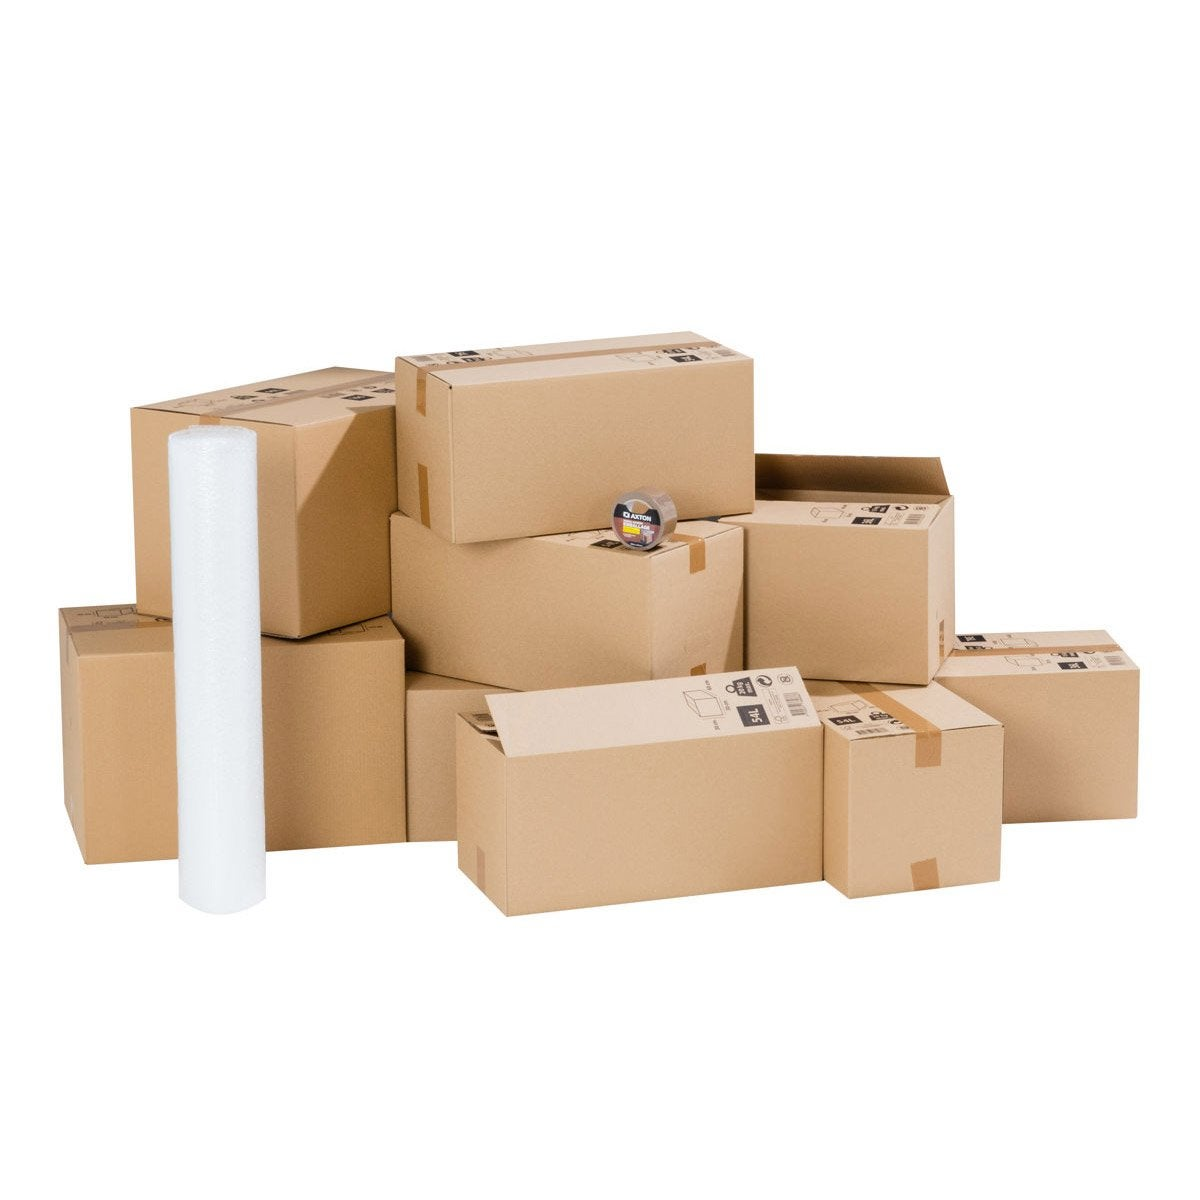 kit d m nagement pour logement 20m cartons film bulle adh sif leroy merlin. Black Bedroom Furniture Sets. Home Design Ideas